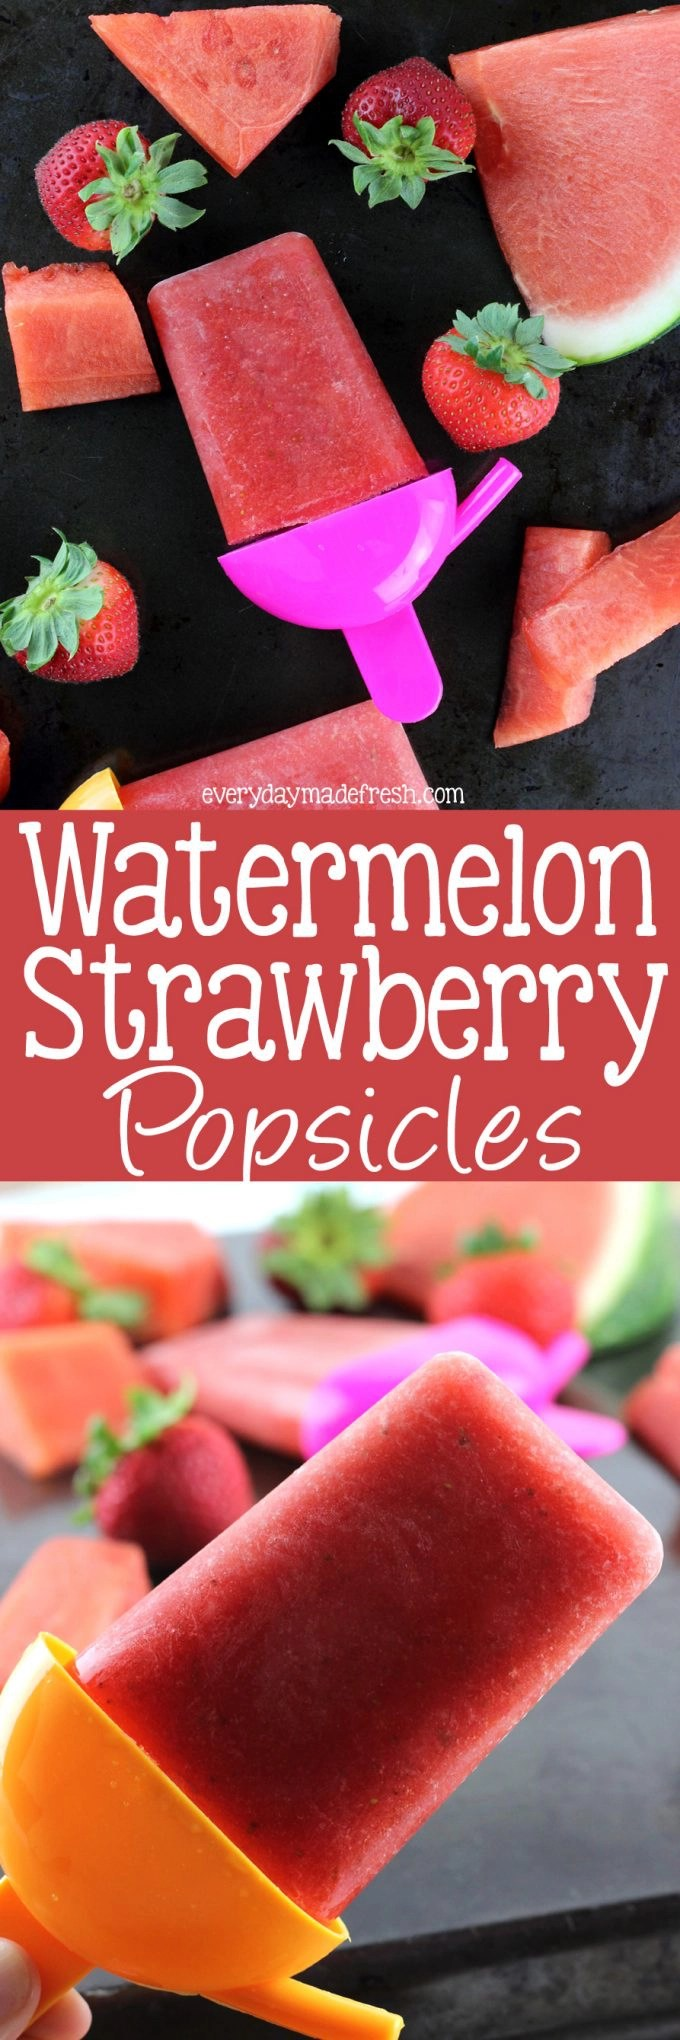 Nothing says summer like a popsicle! Of course nothing says summer more like these Watermelon Strawberry Popsicles! | EverydayMadeFresh.com